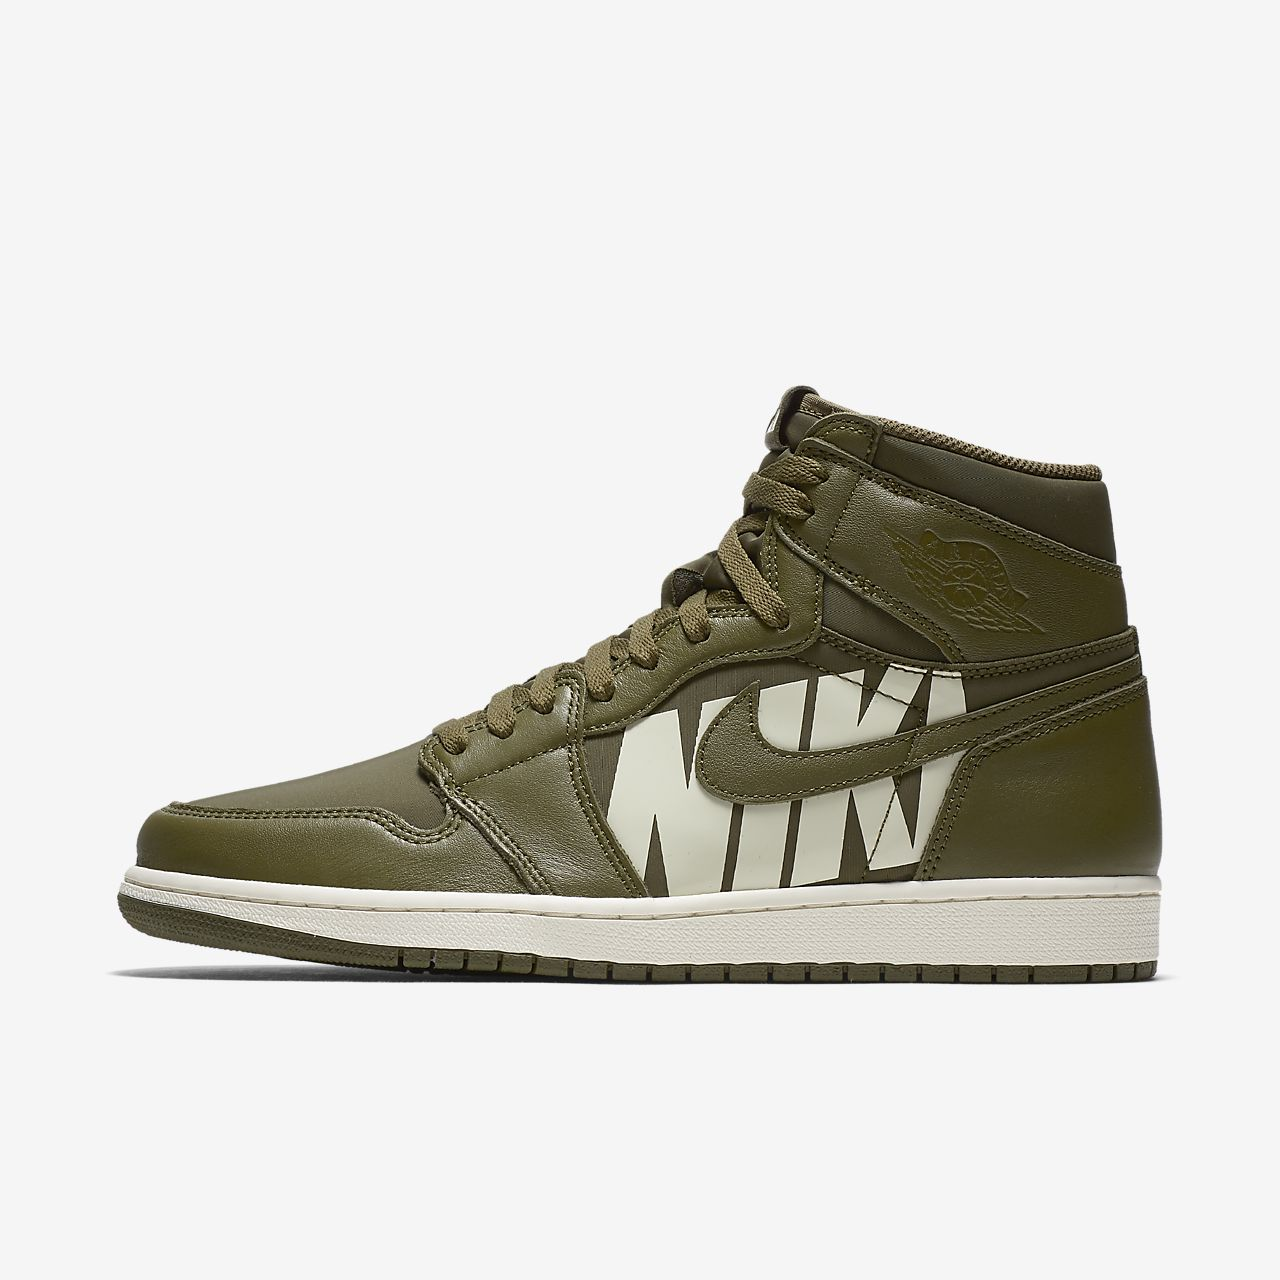 a676c27b01ae Air Jordan 1 Retro High OG Shoe. Nike.com AT